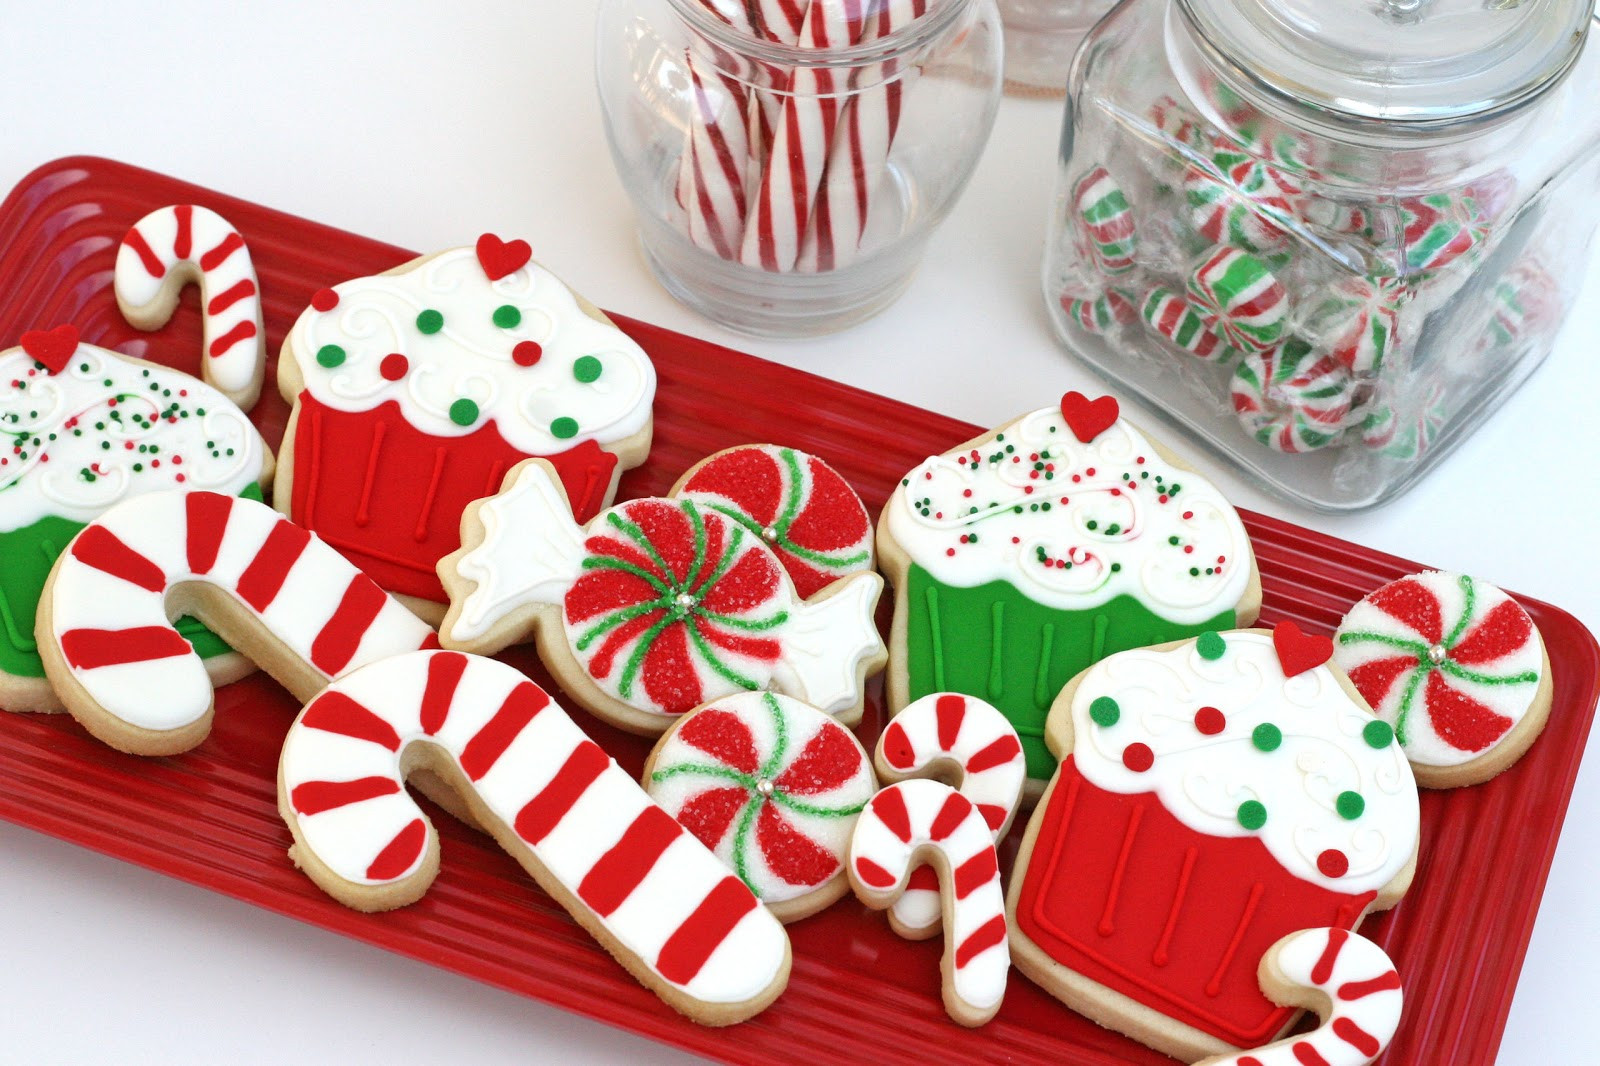 Christmas Candy Cookies  Christmas Cookies Galore Glorious Treats